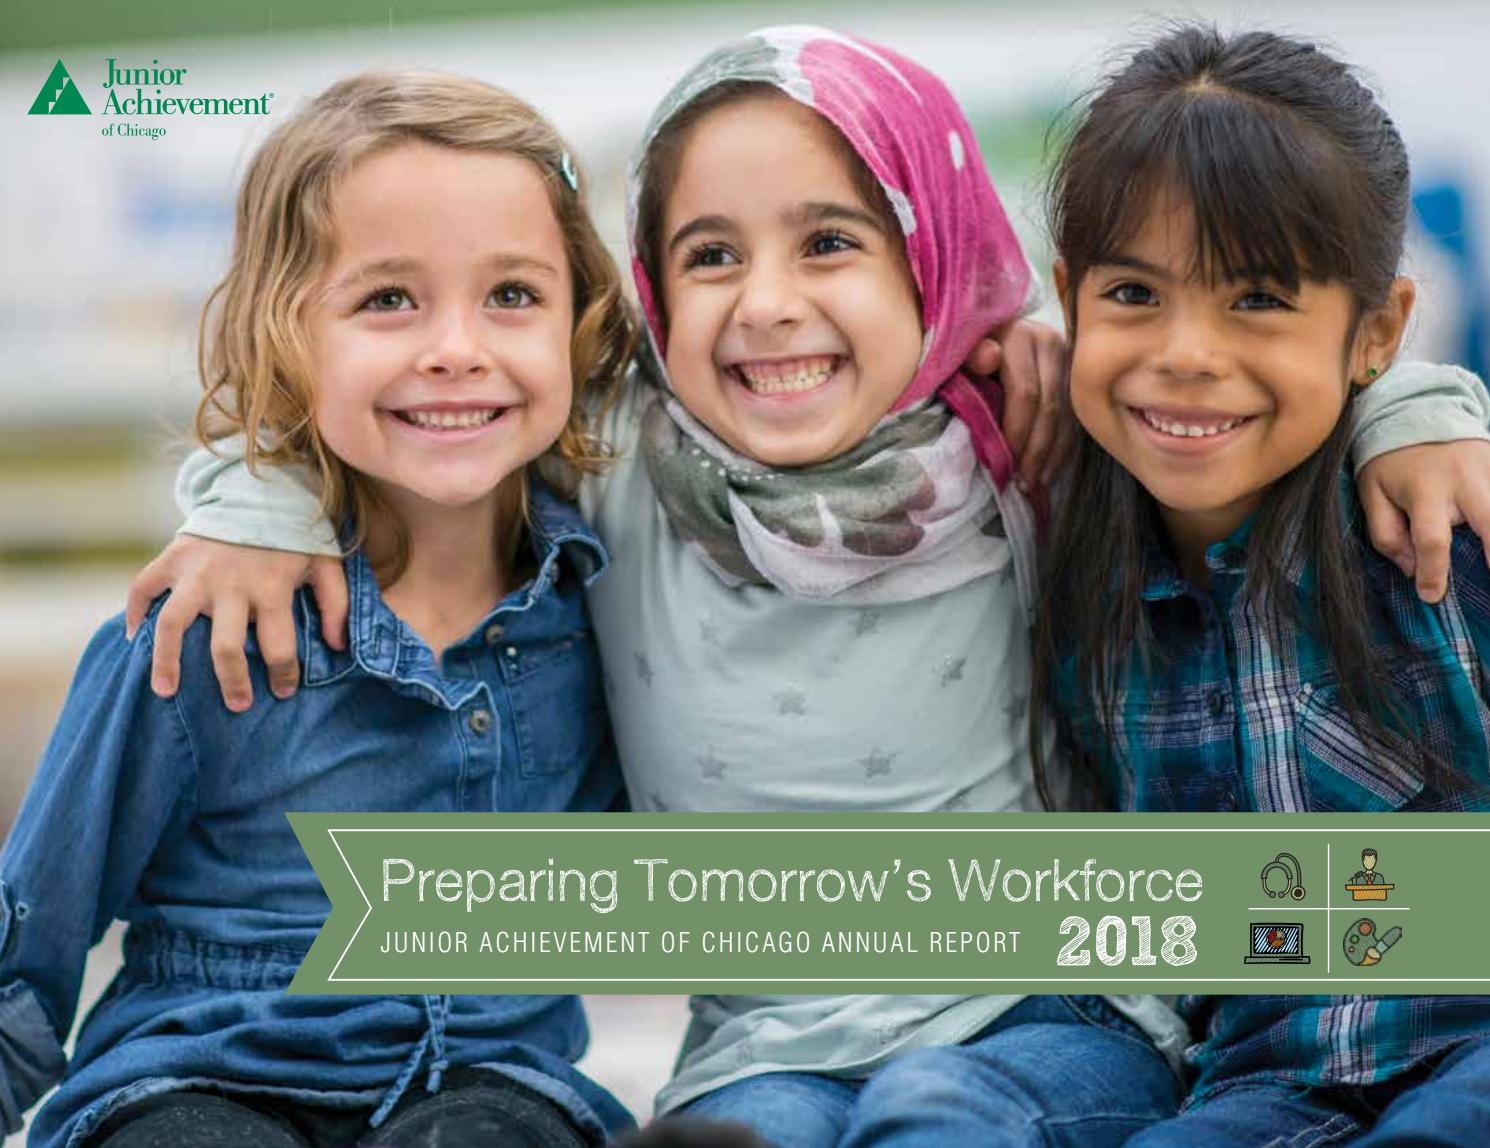 2018 Annual Report by Junior Achievement of Chicago - issuu